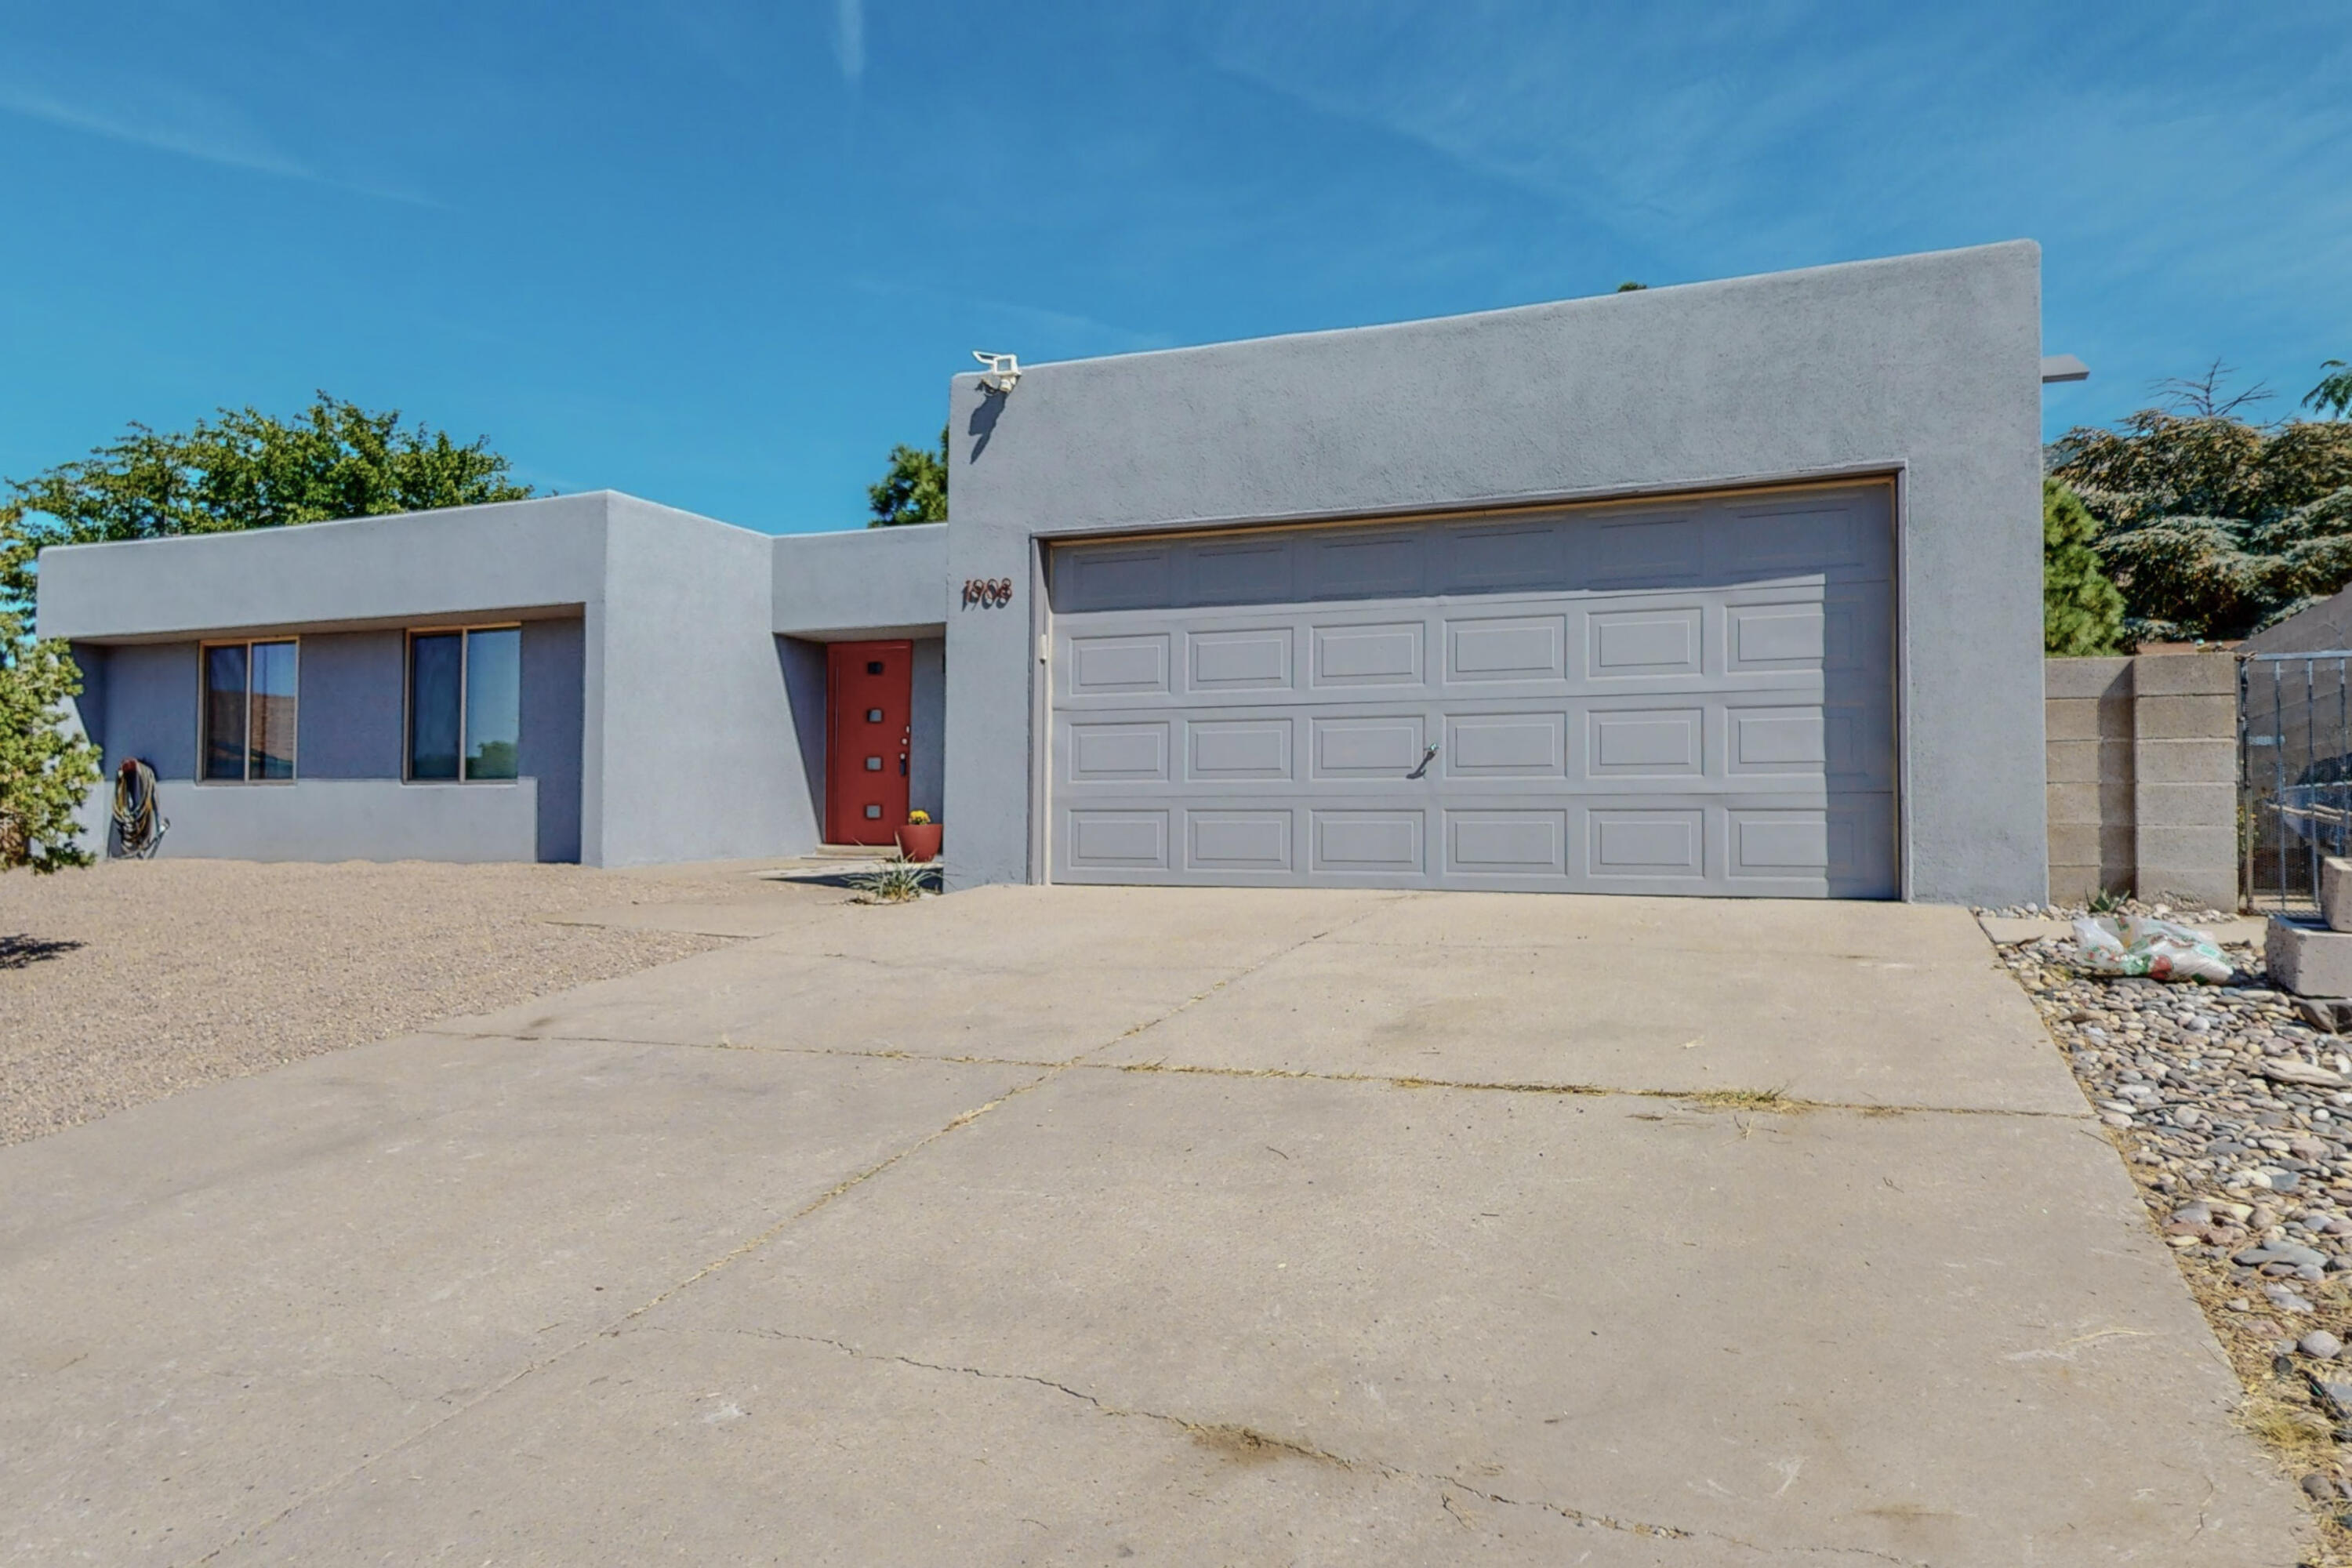 Welcome Home! Charming 3 bedroom 2 bath single story home in the beautiful Foothills now available! Home features 2 large living areas, tastefully updated kitchen with custom cabinets and brand new appliance package! Beautiful plank flooring throughout!  Oversized yard with covered patio,